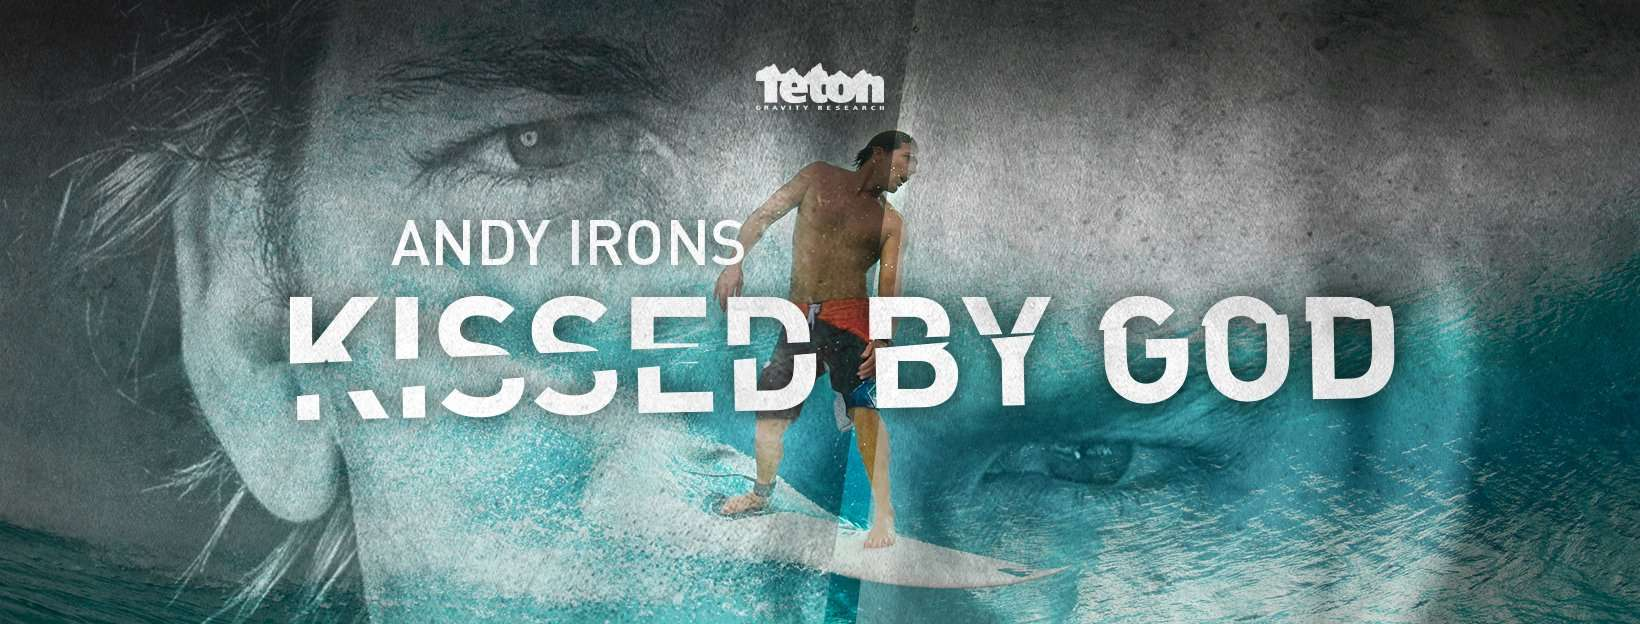 ANDY IRONS KISSED BY GOD PREMIER!!!!